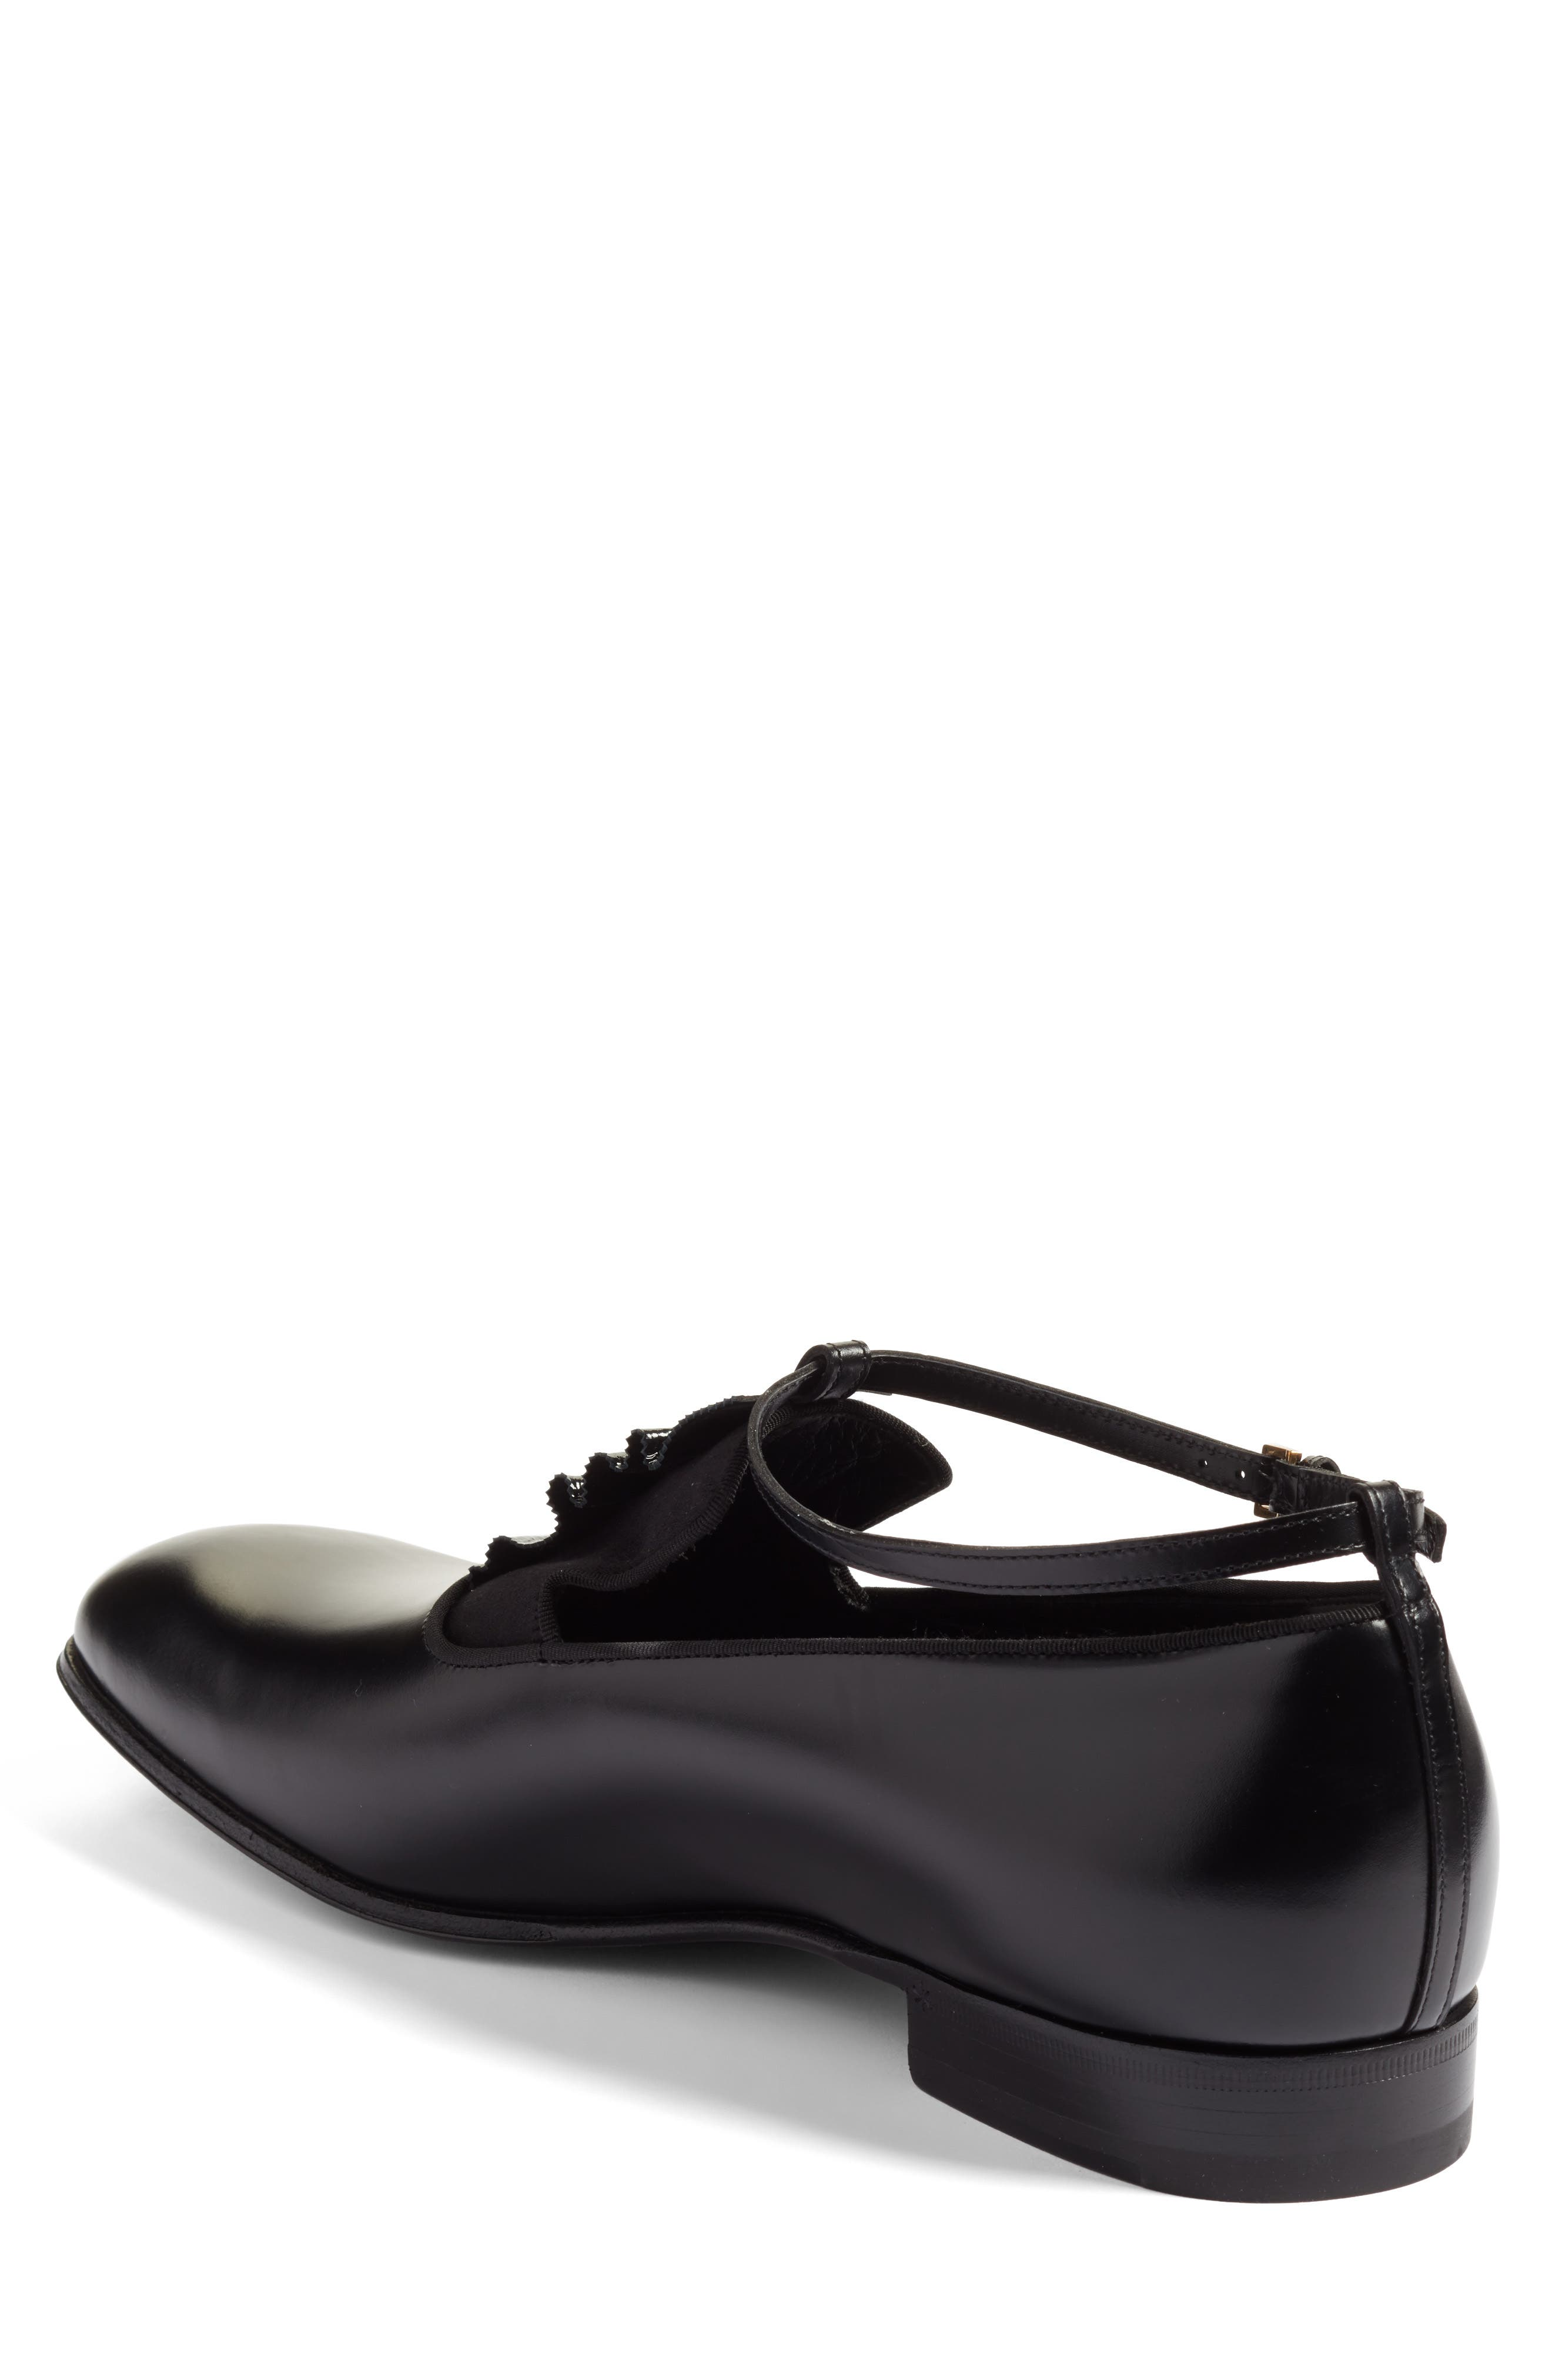 Thesis Loafer,                             Alternate thumbnail 2, color,                             001